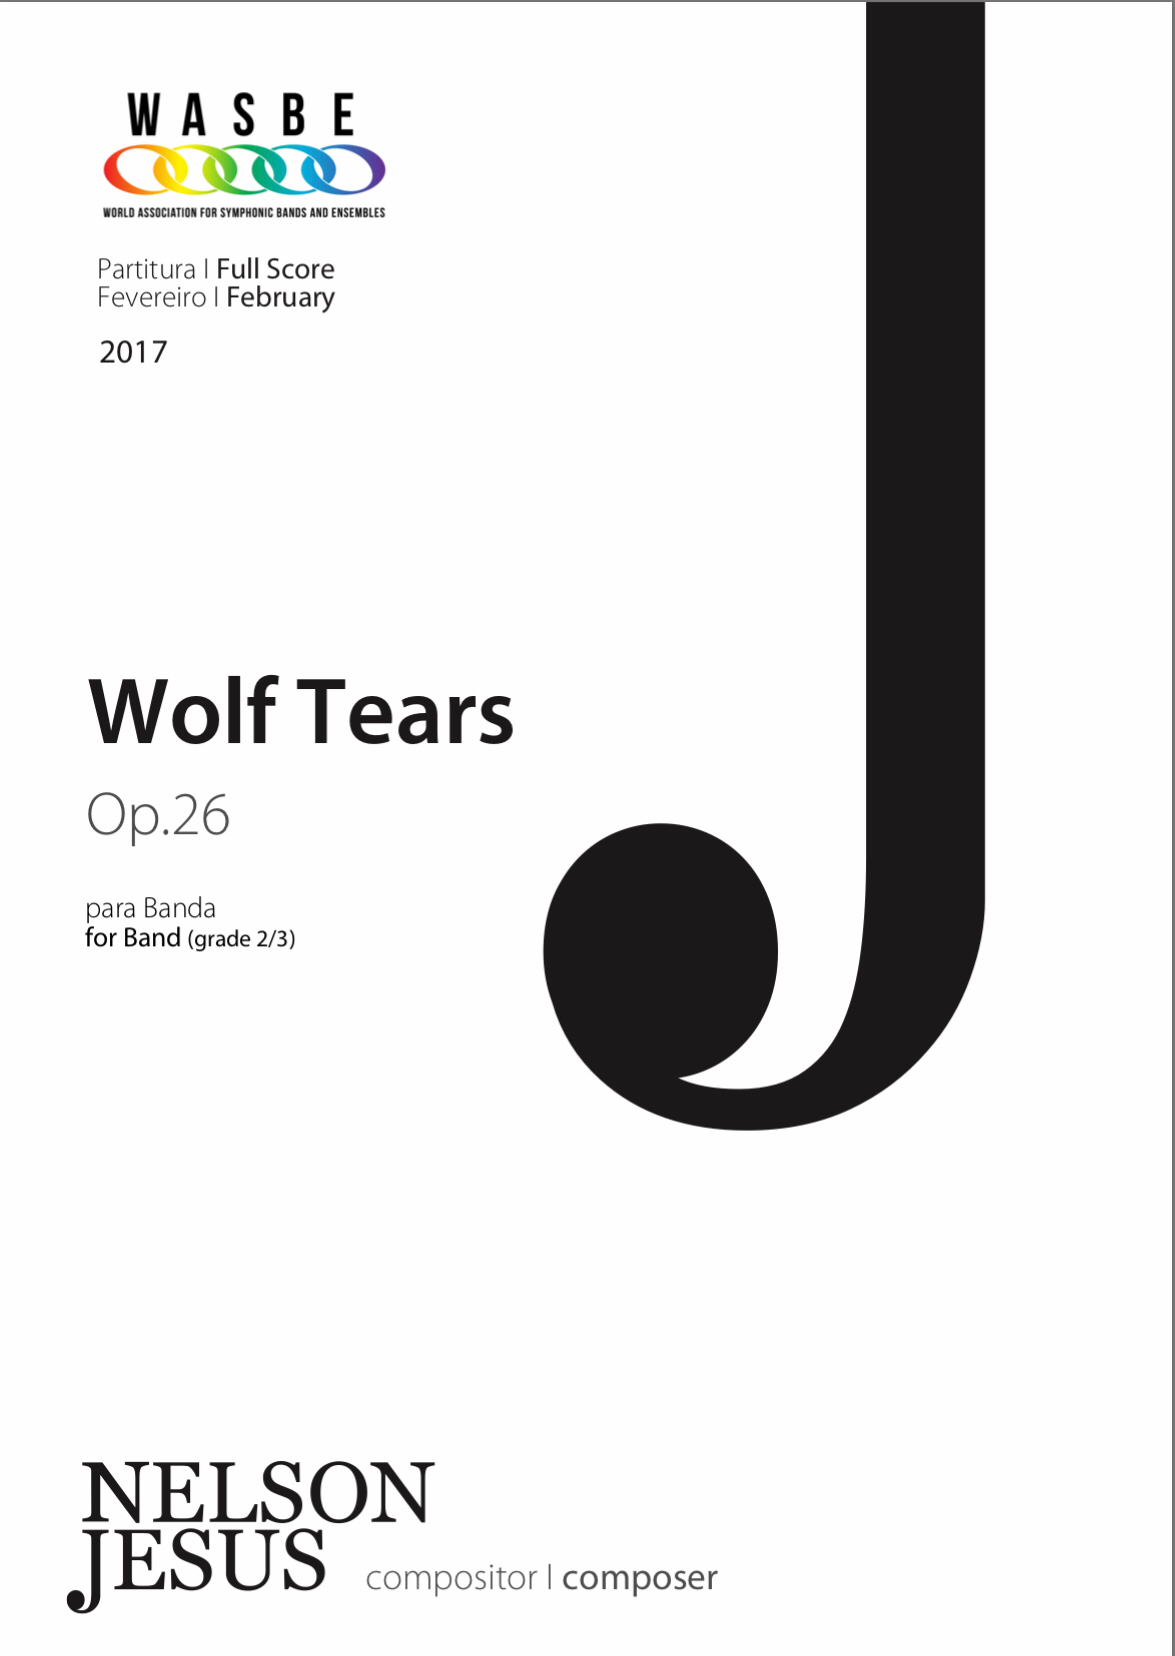 Wolf Tears by Nelson Jesus